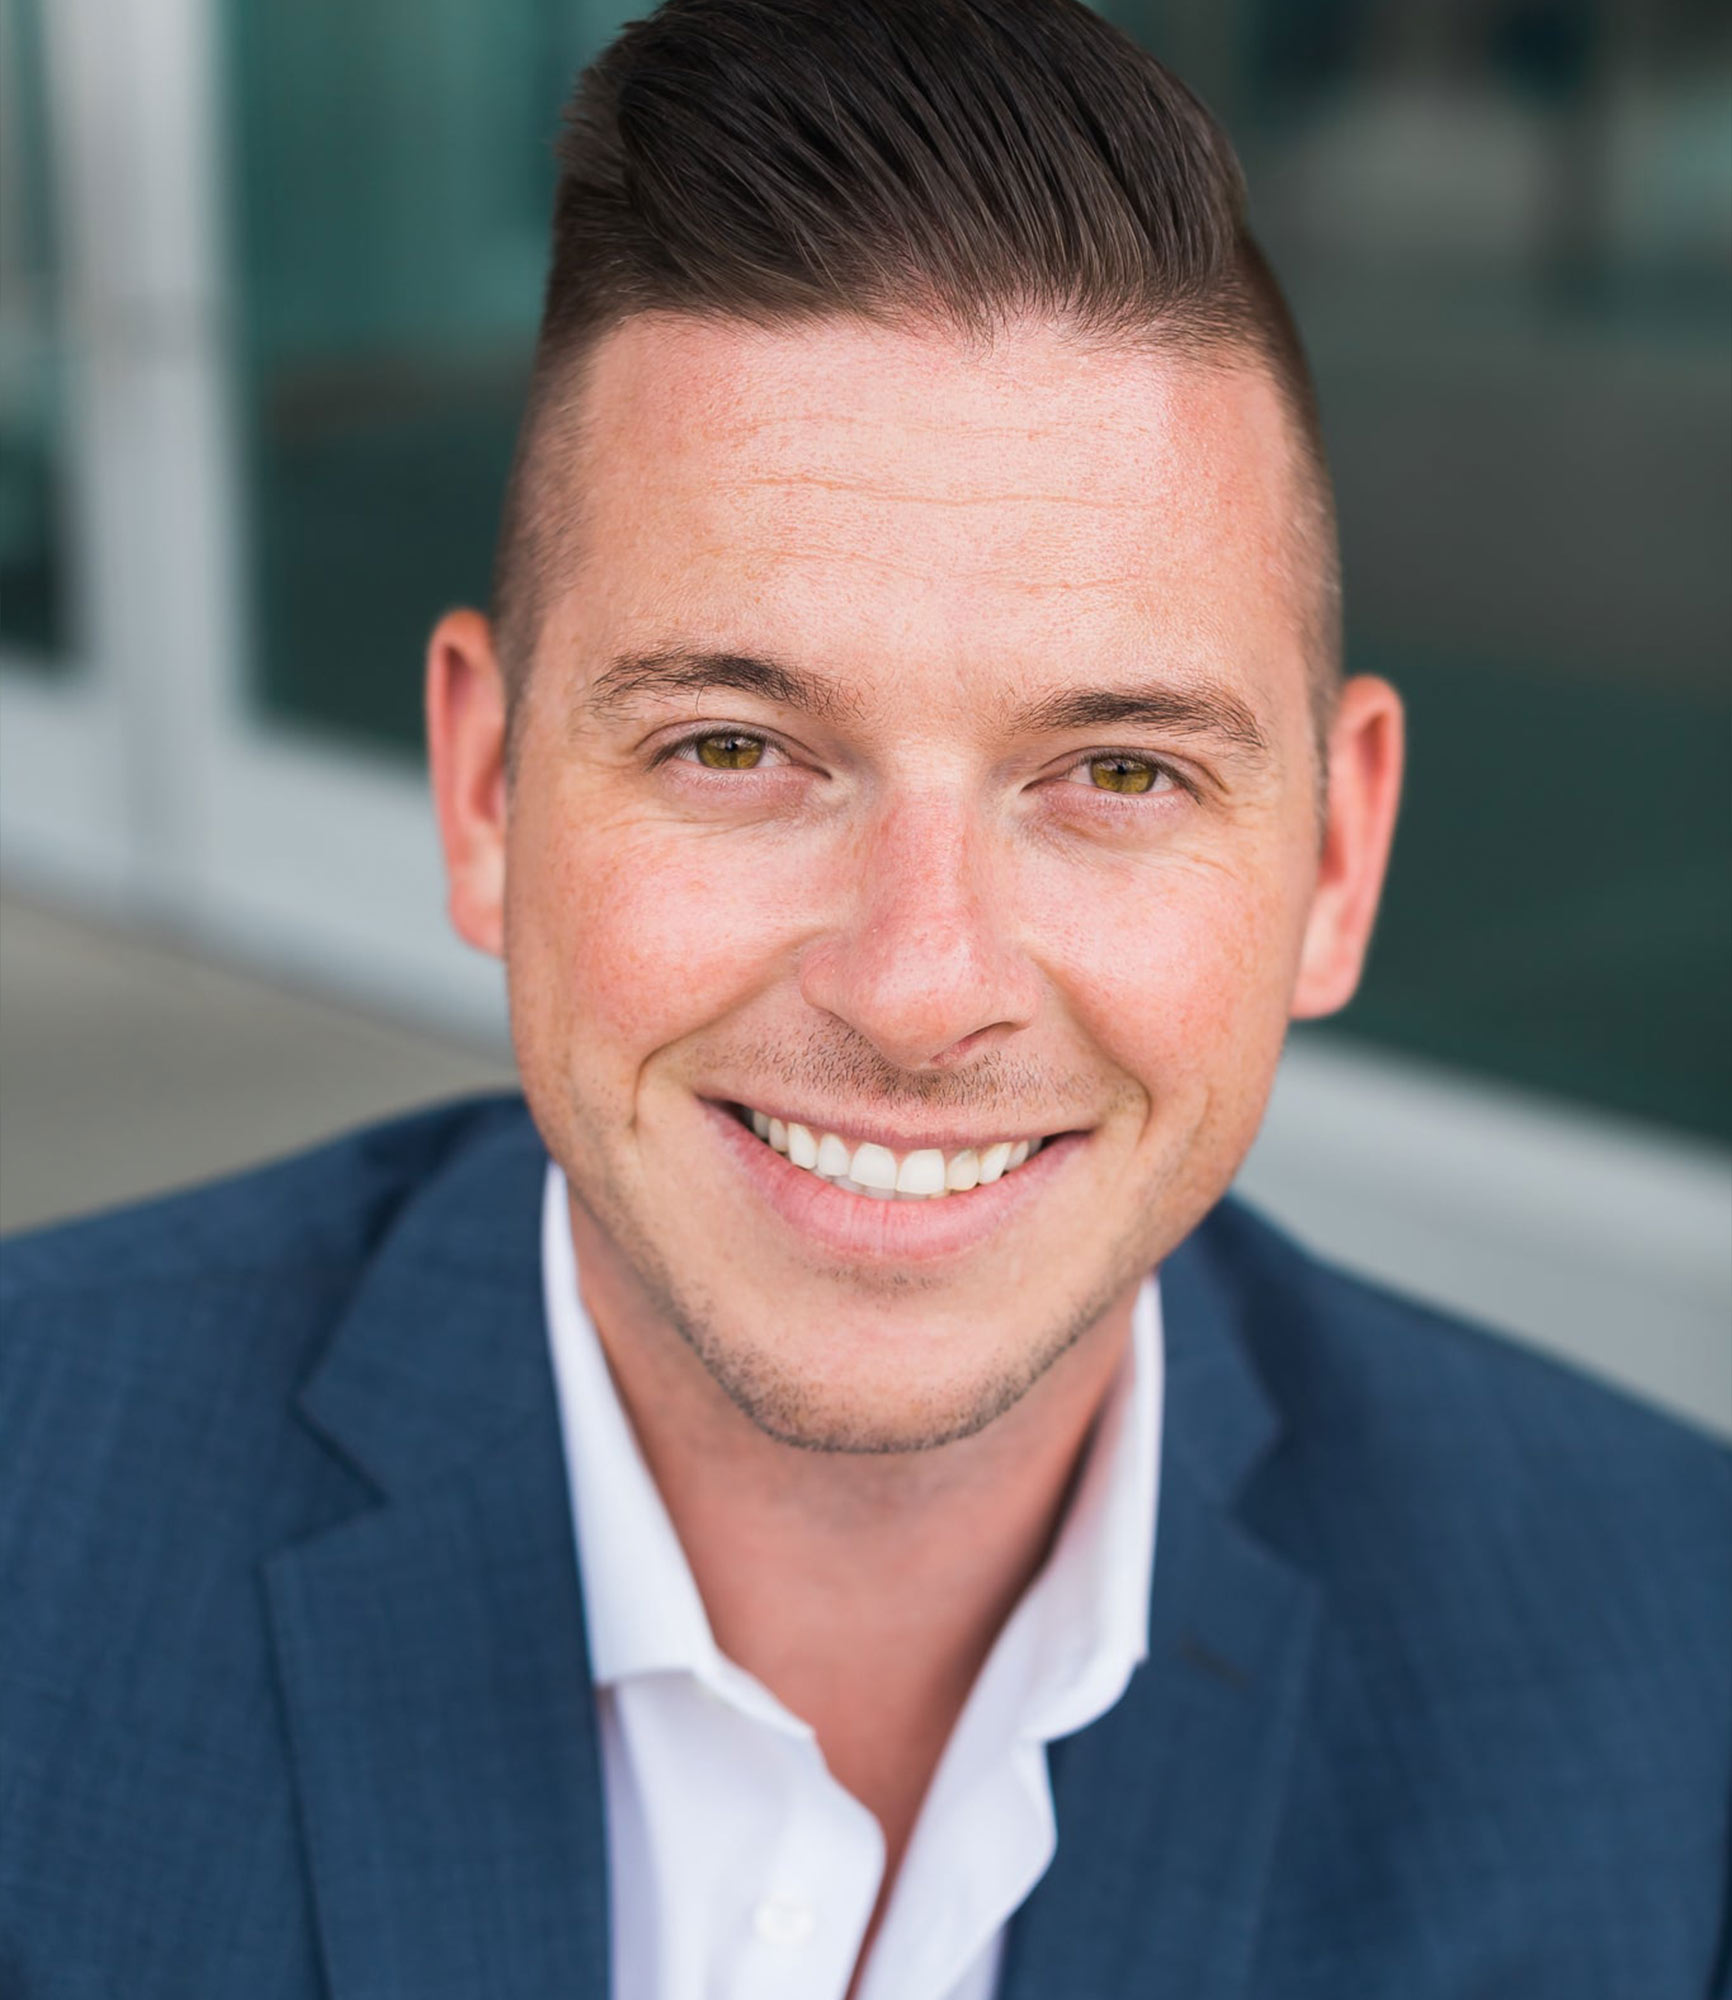 Jared Franczak realtor headshot huber mortgage site